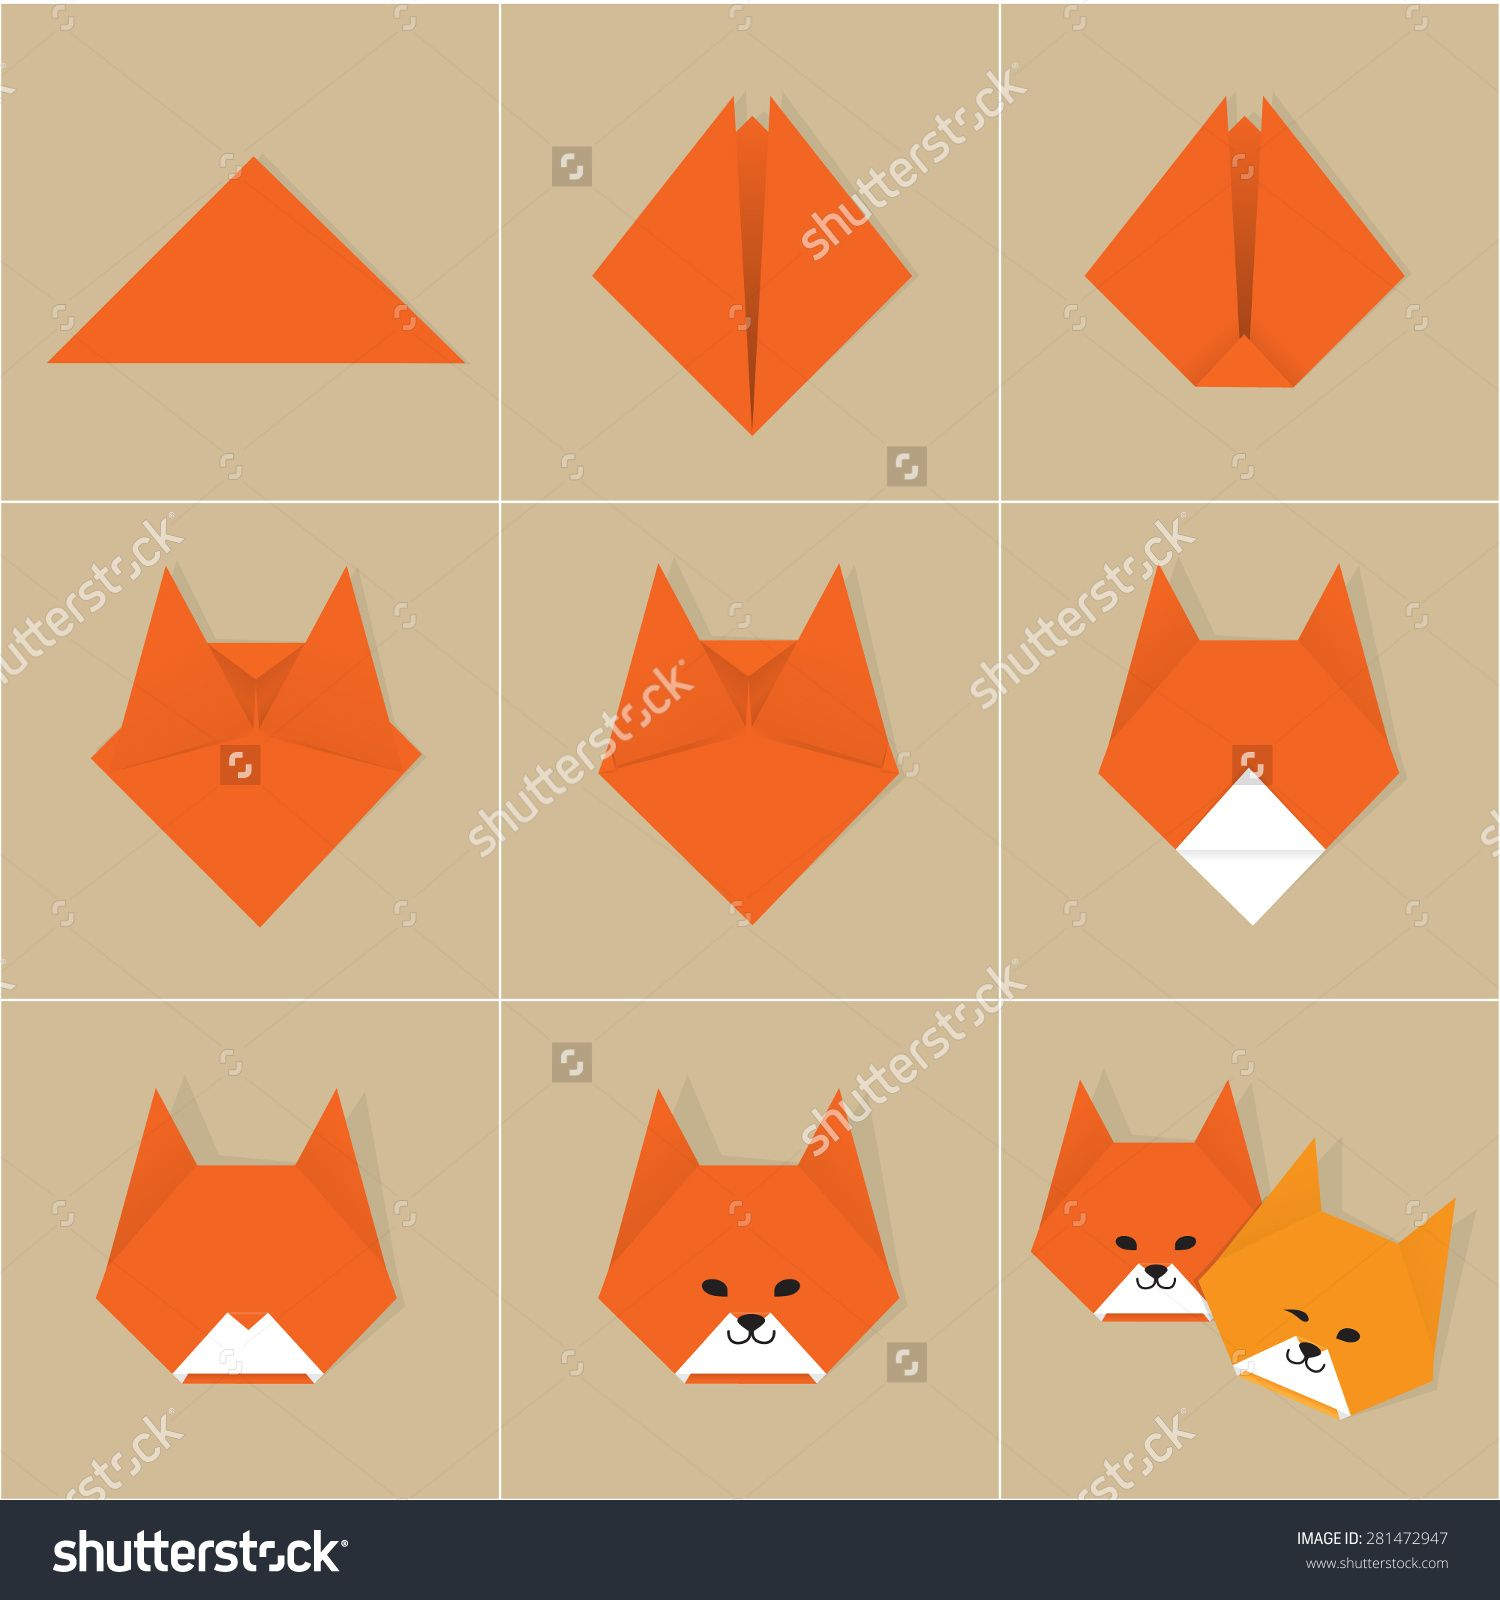 step by step origami - Google Search | step by step ... - photo#21